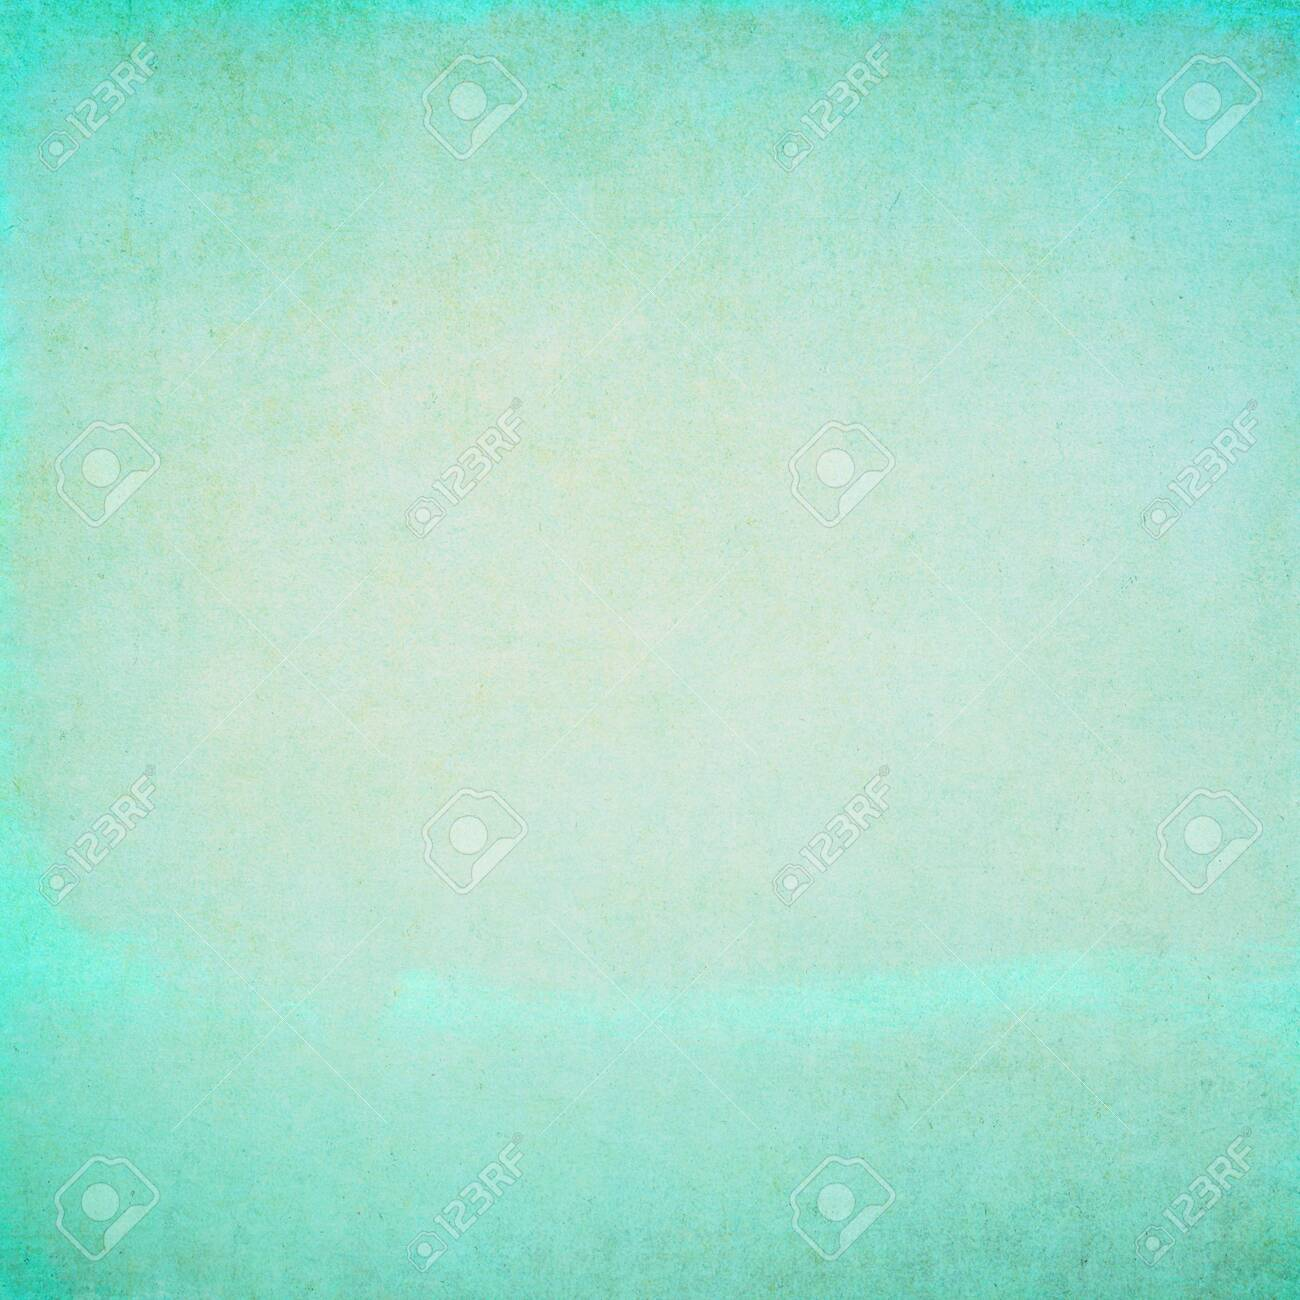 antique graphic grunge background with space - 128242737